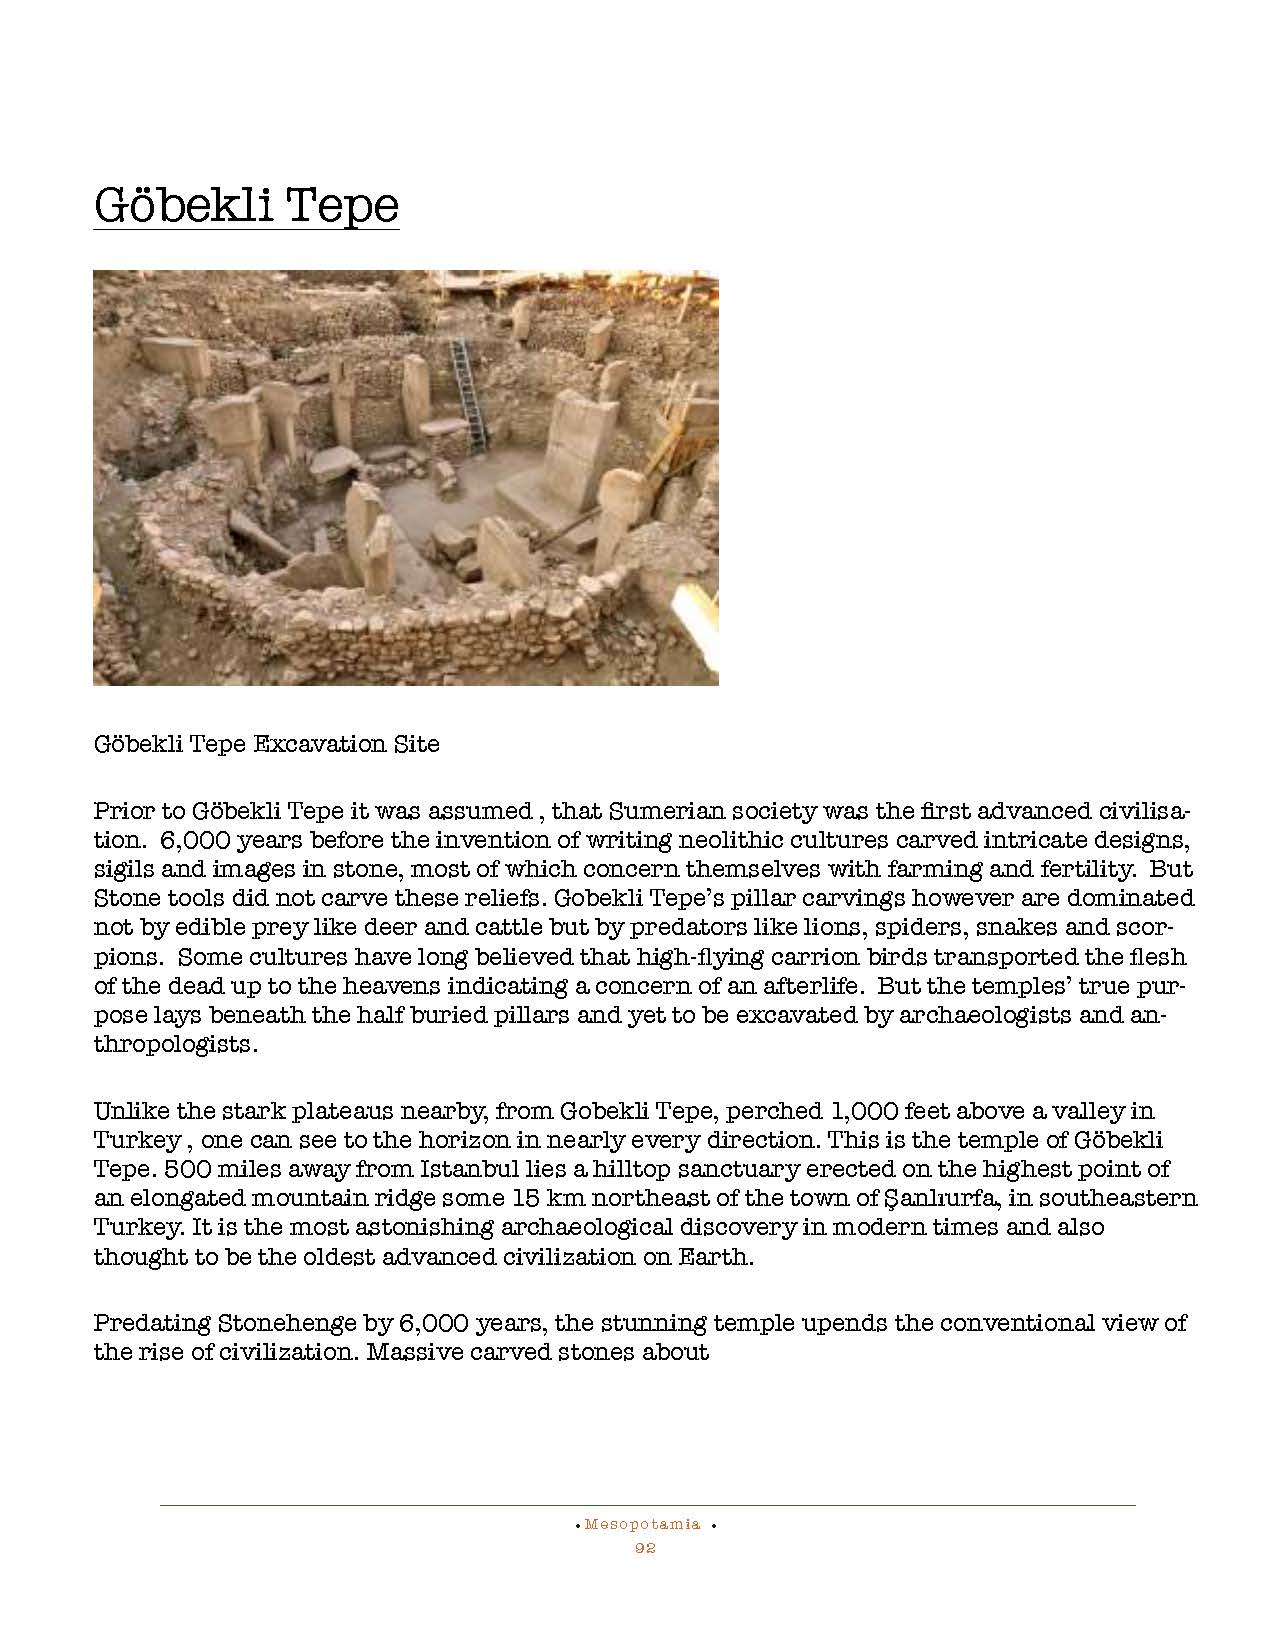 HOCE- Fertile Crescent Notes_Page_092.jpg